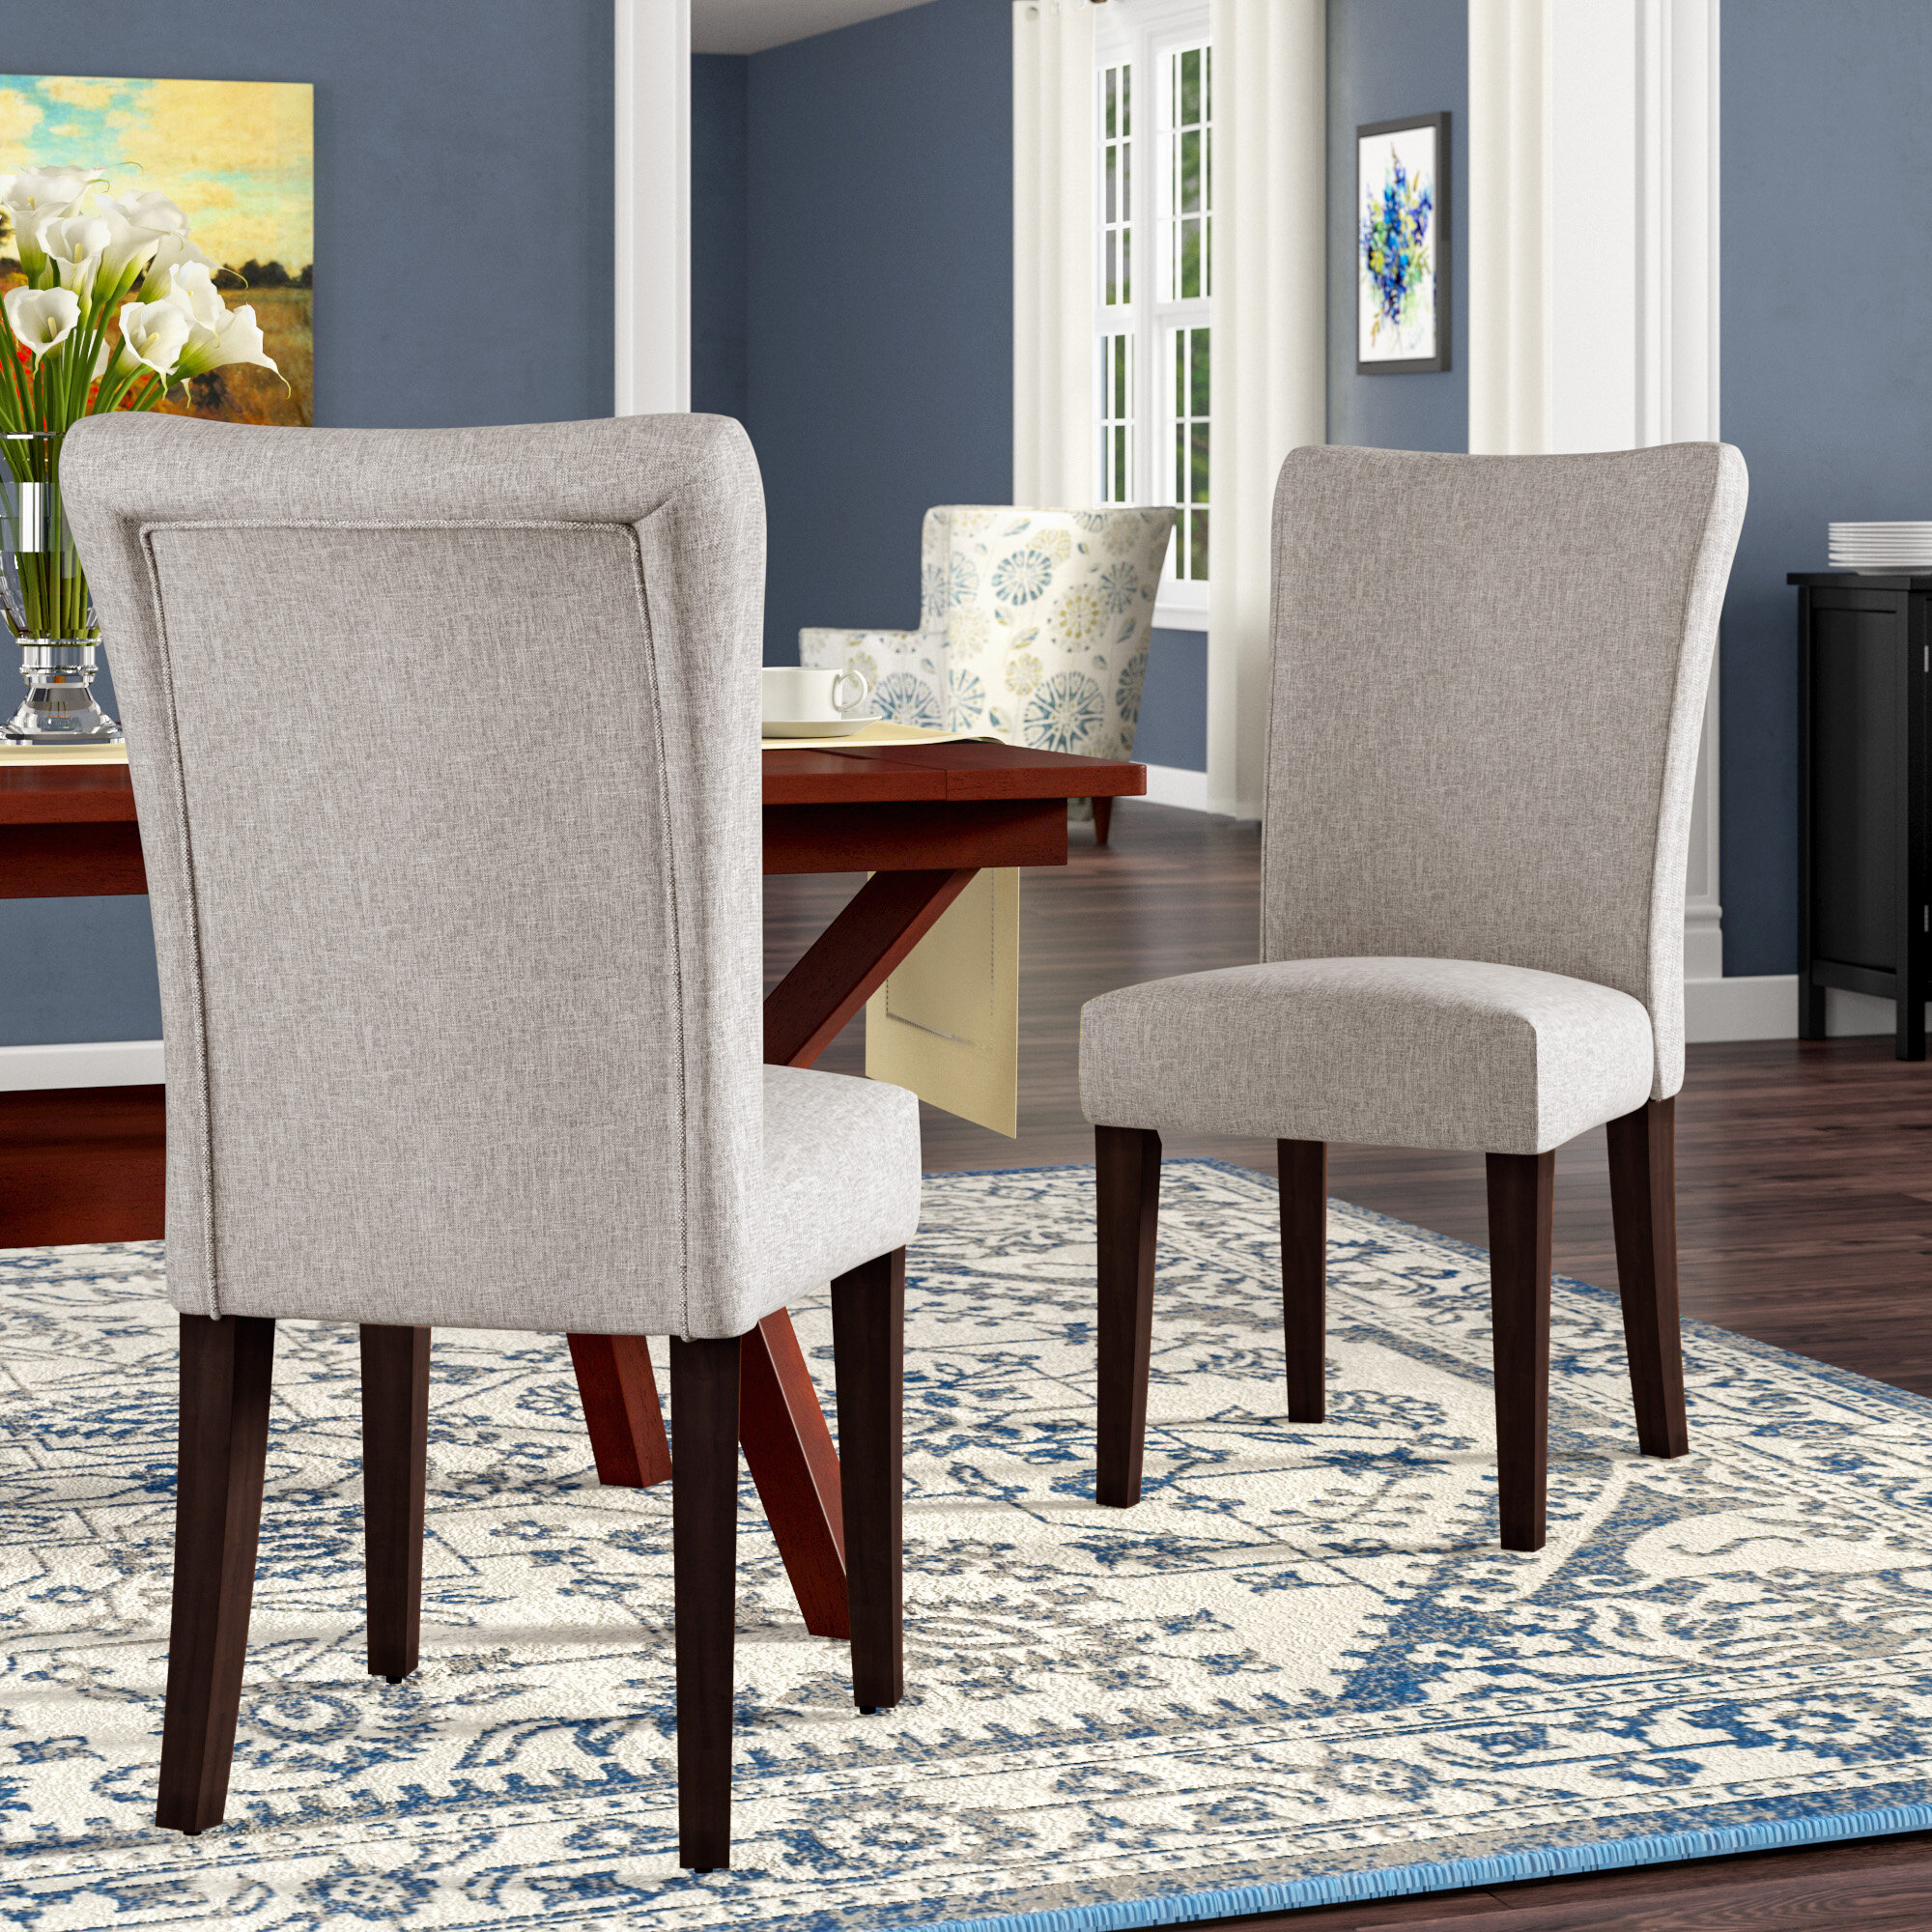 Small Accent Chairs  Up to 9% Off Through 9/9  Wayfair